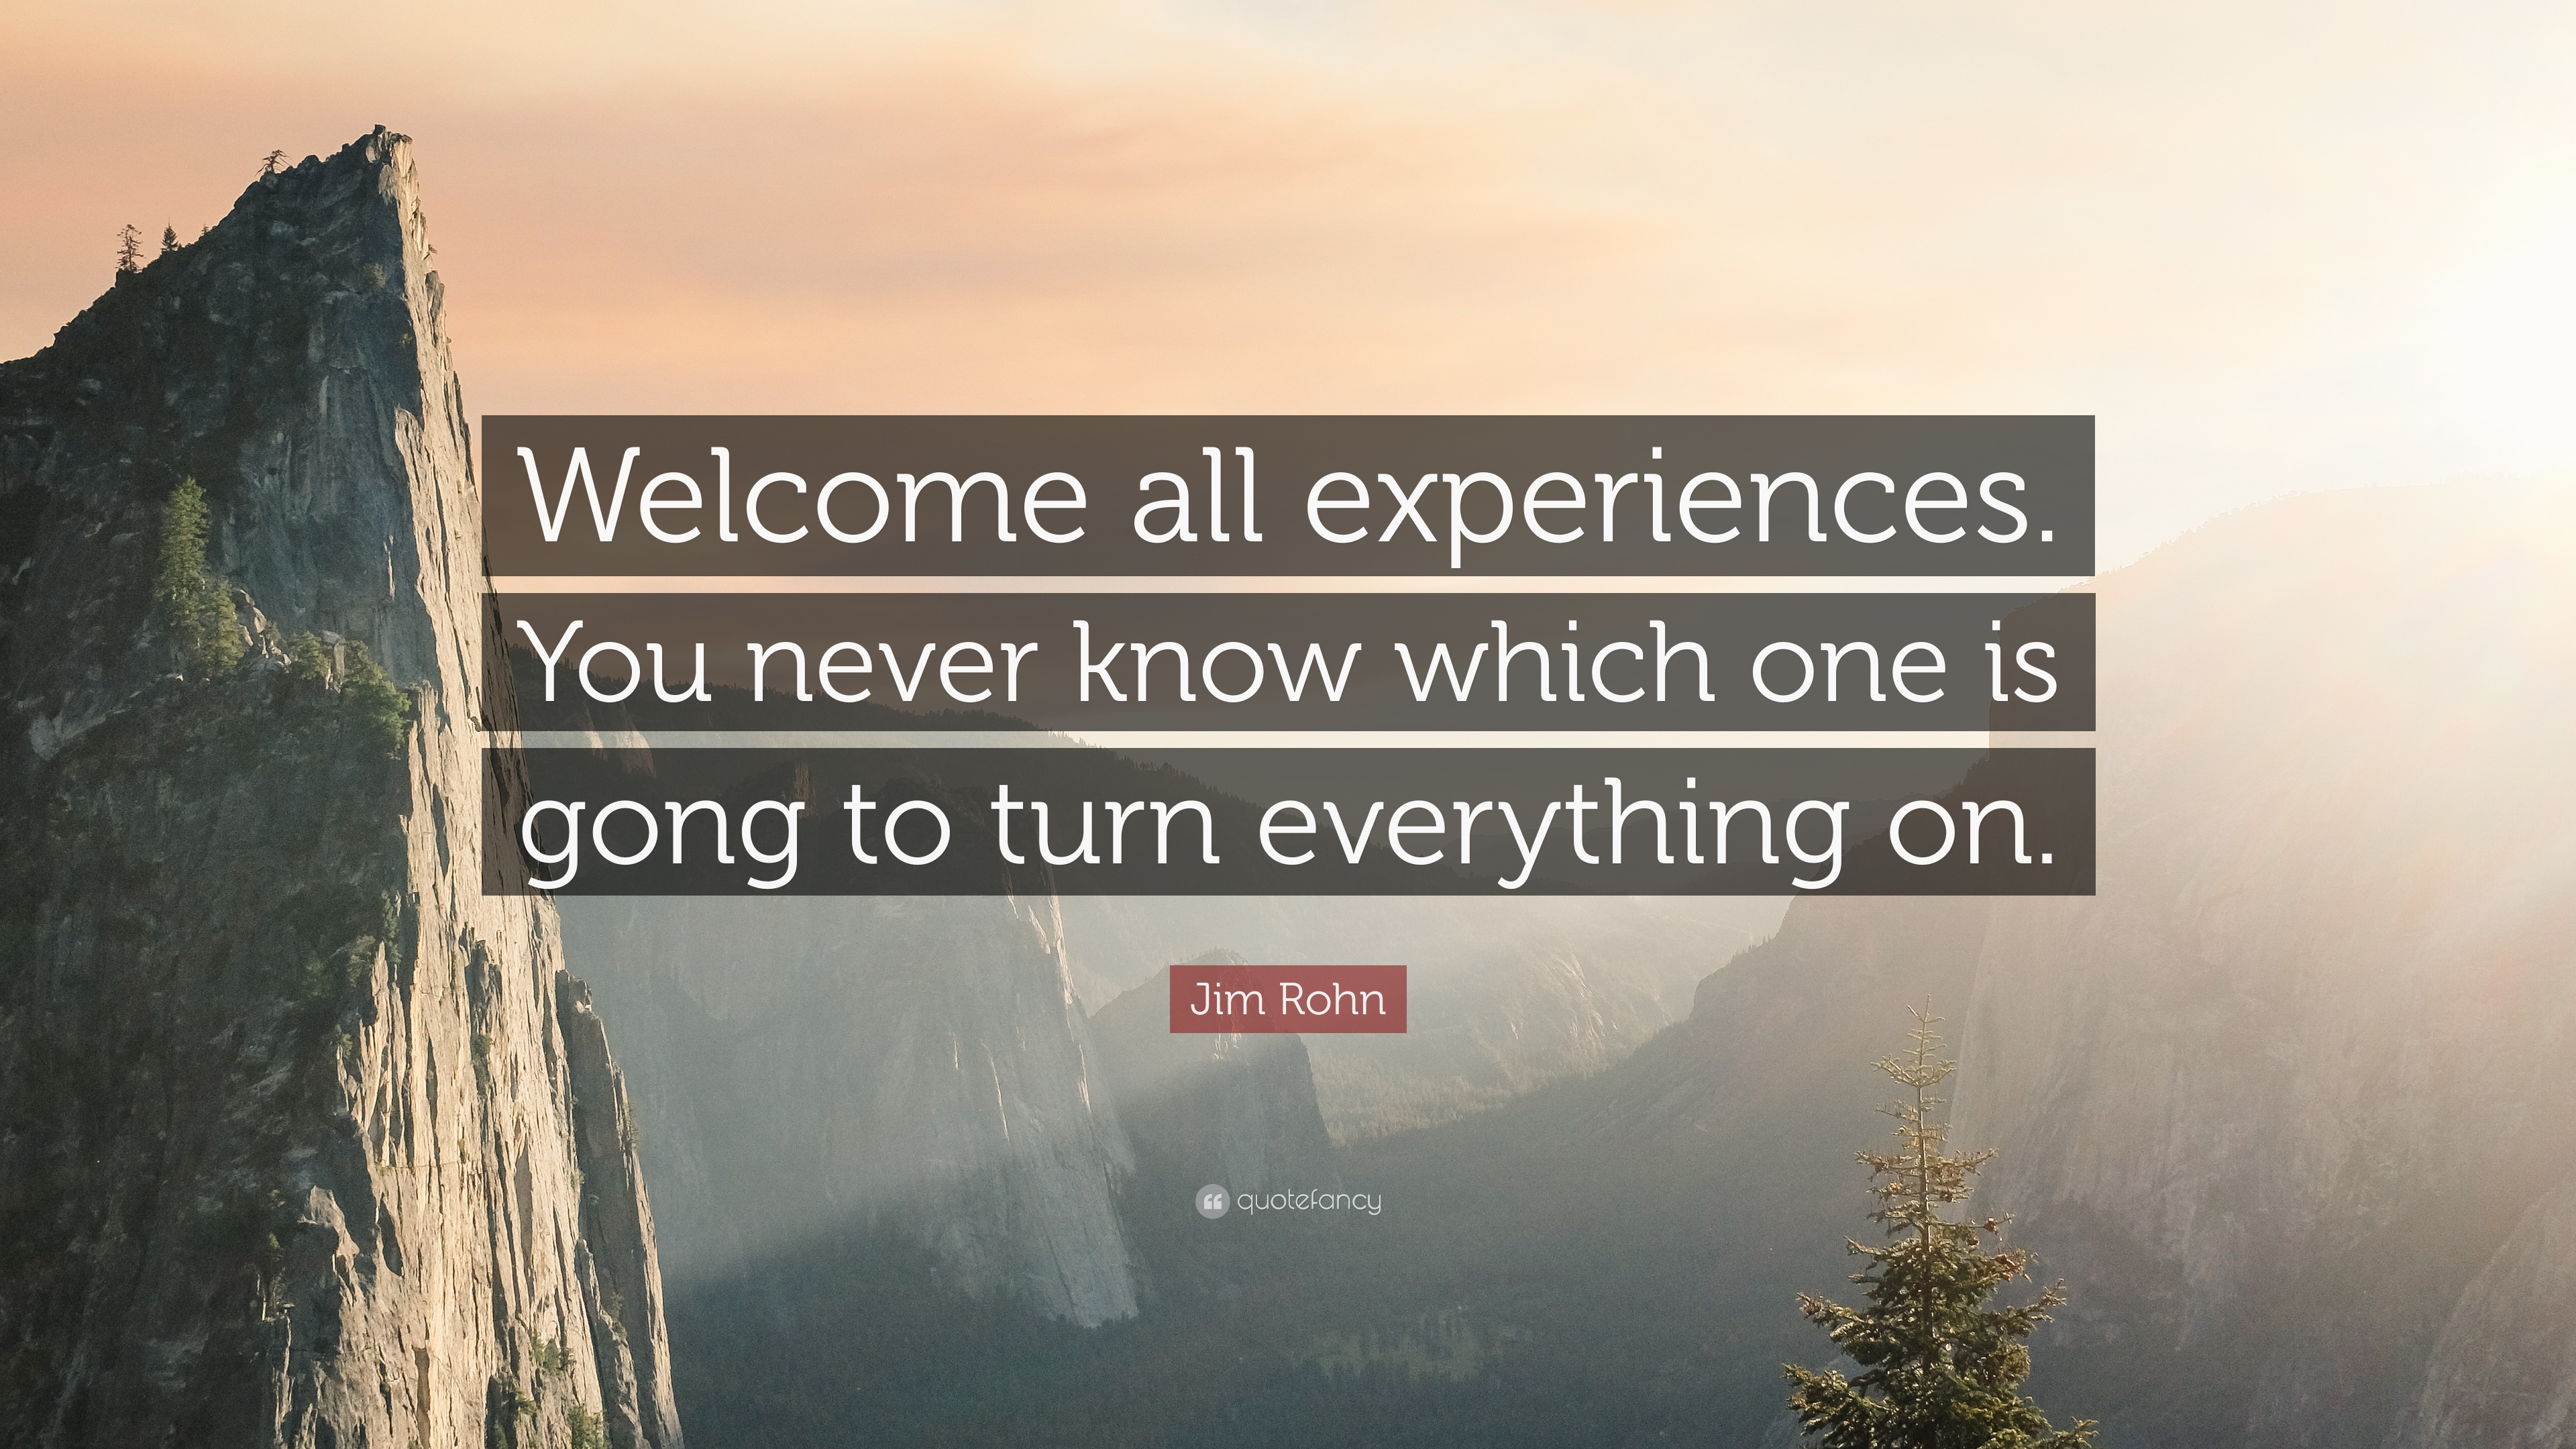 Have you ever experience something like this? How did everything turn out?